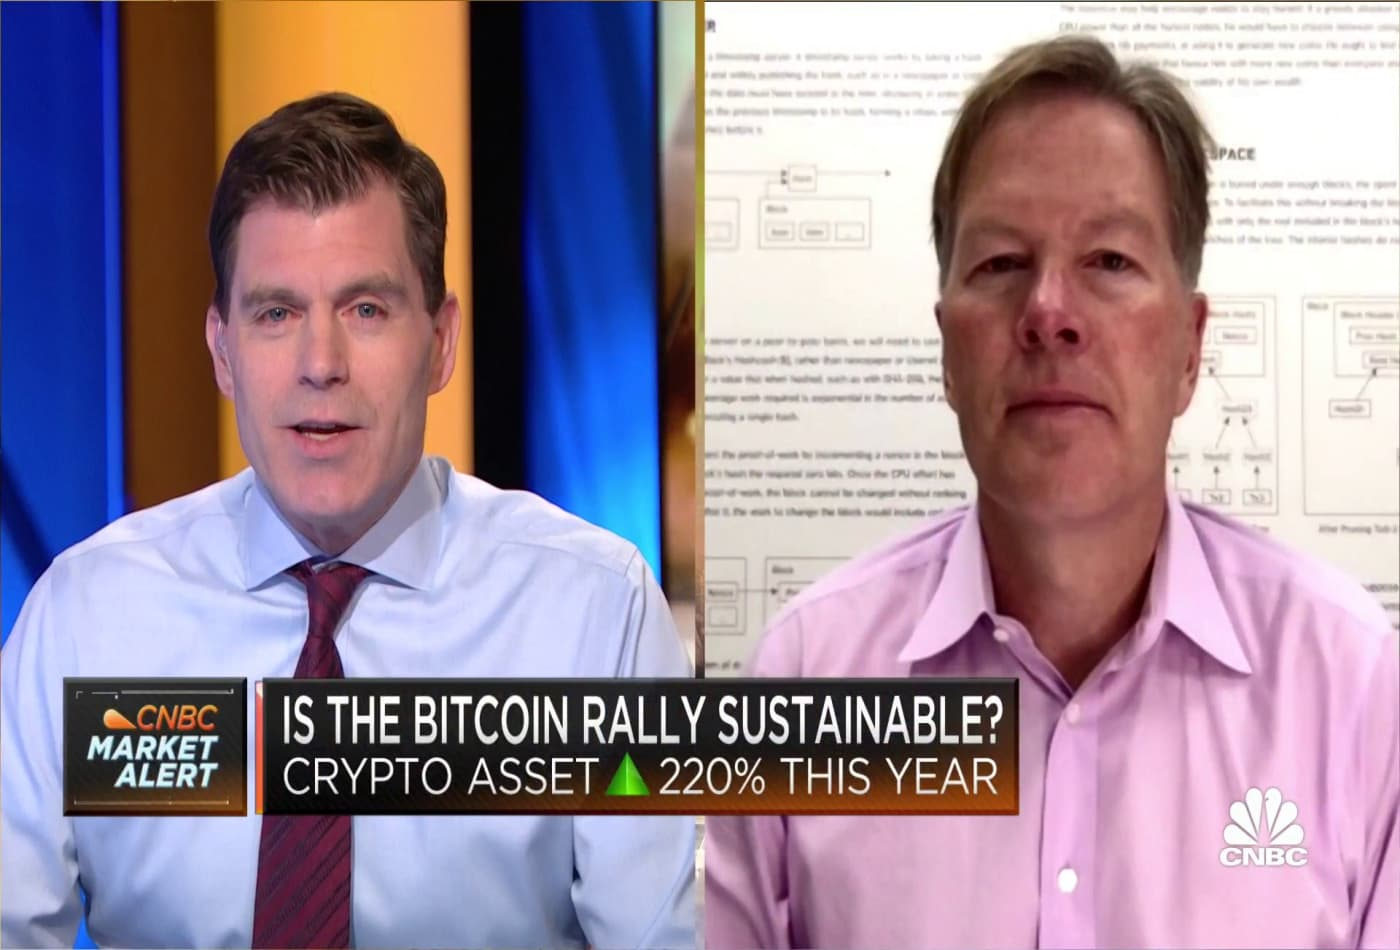 Crypto expert on whether the Bitcoin rally is sustainable